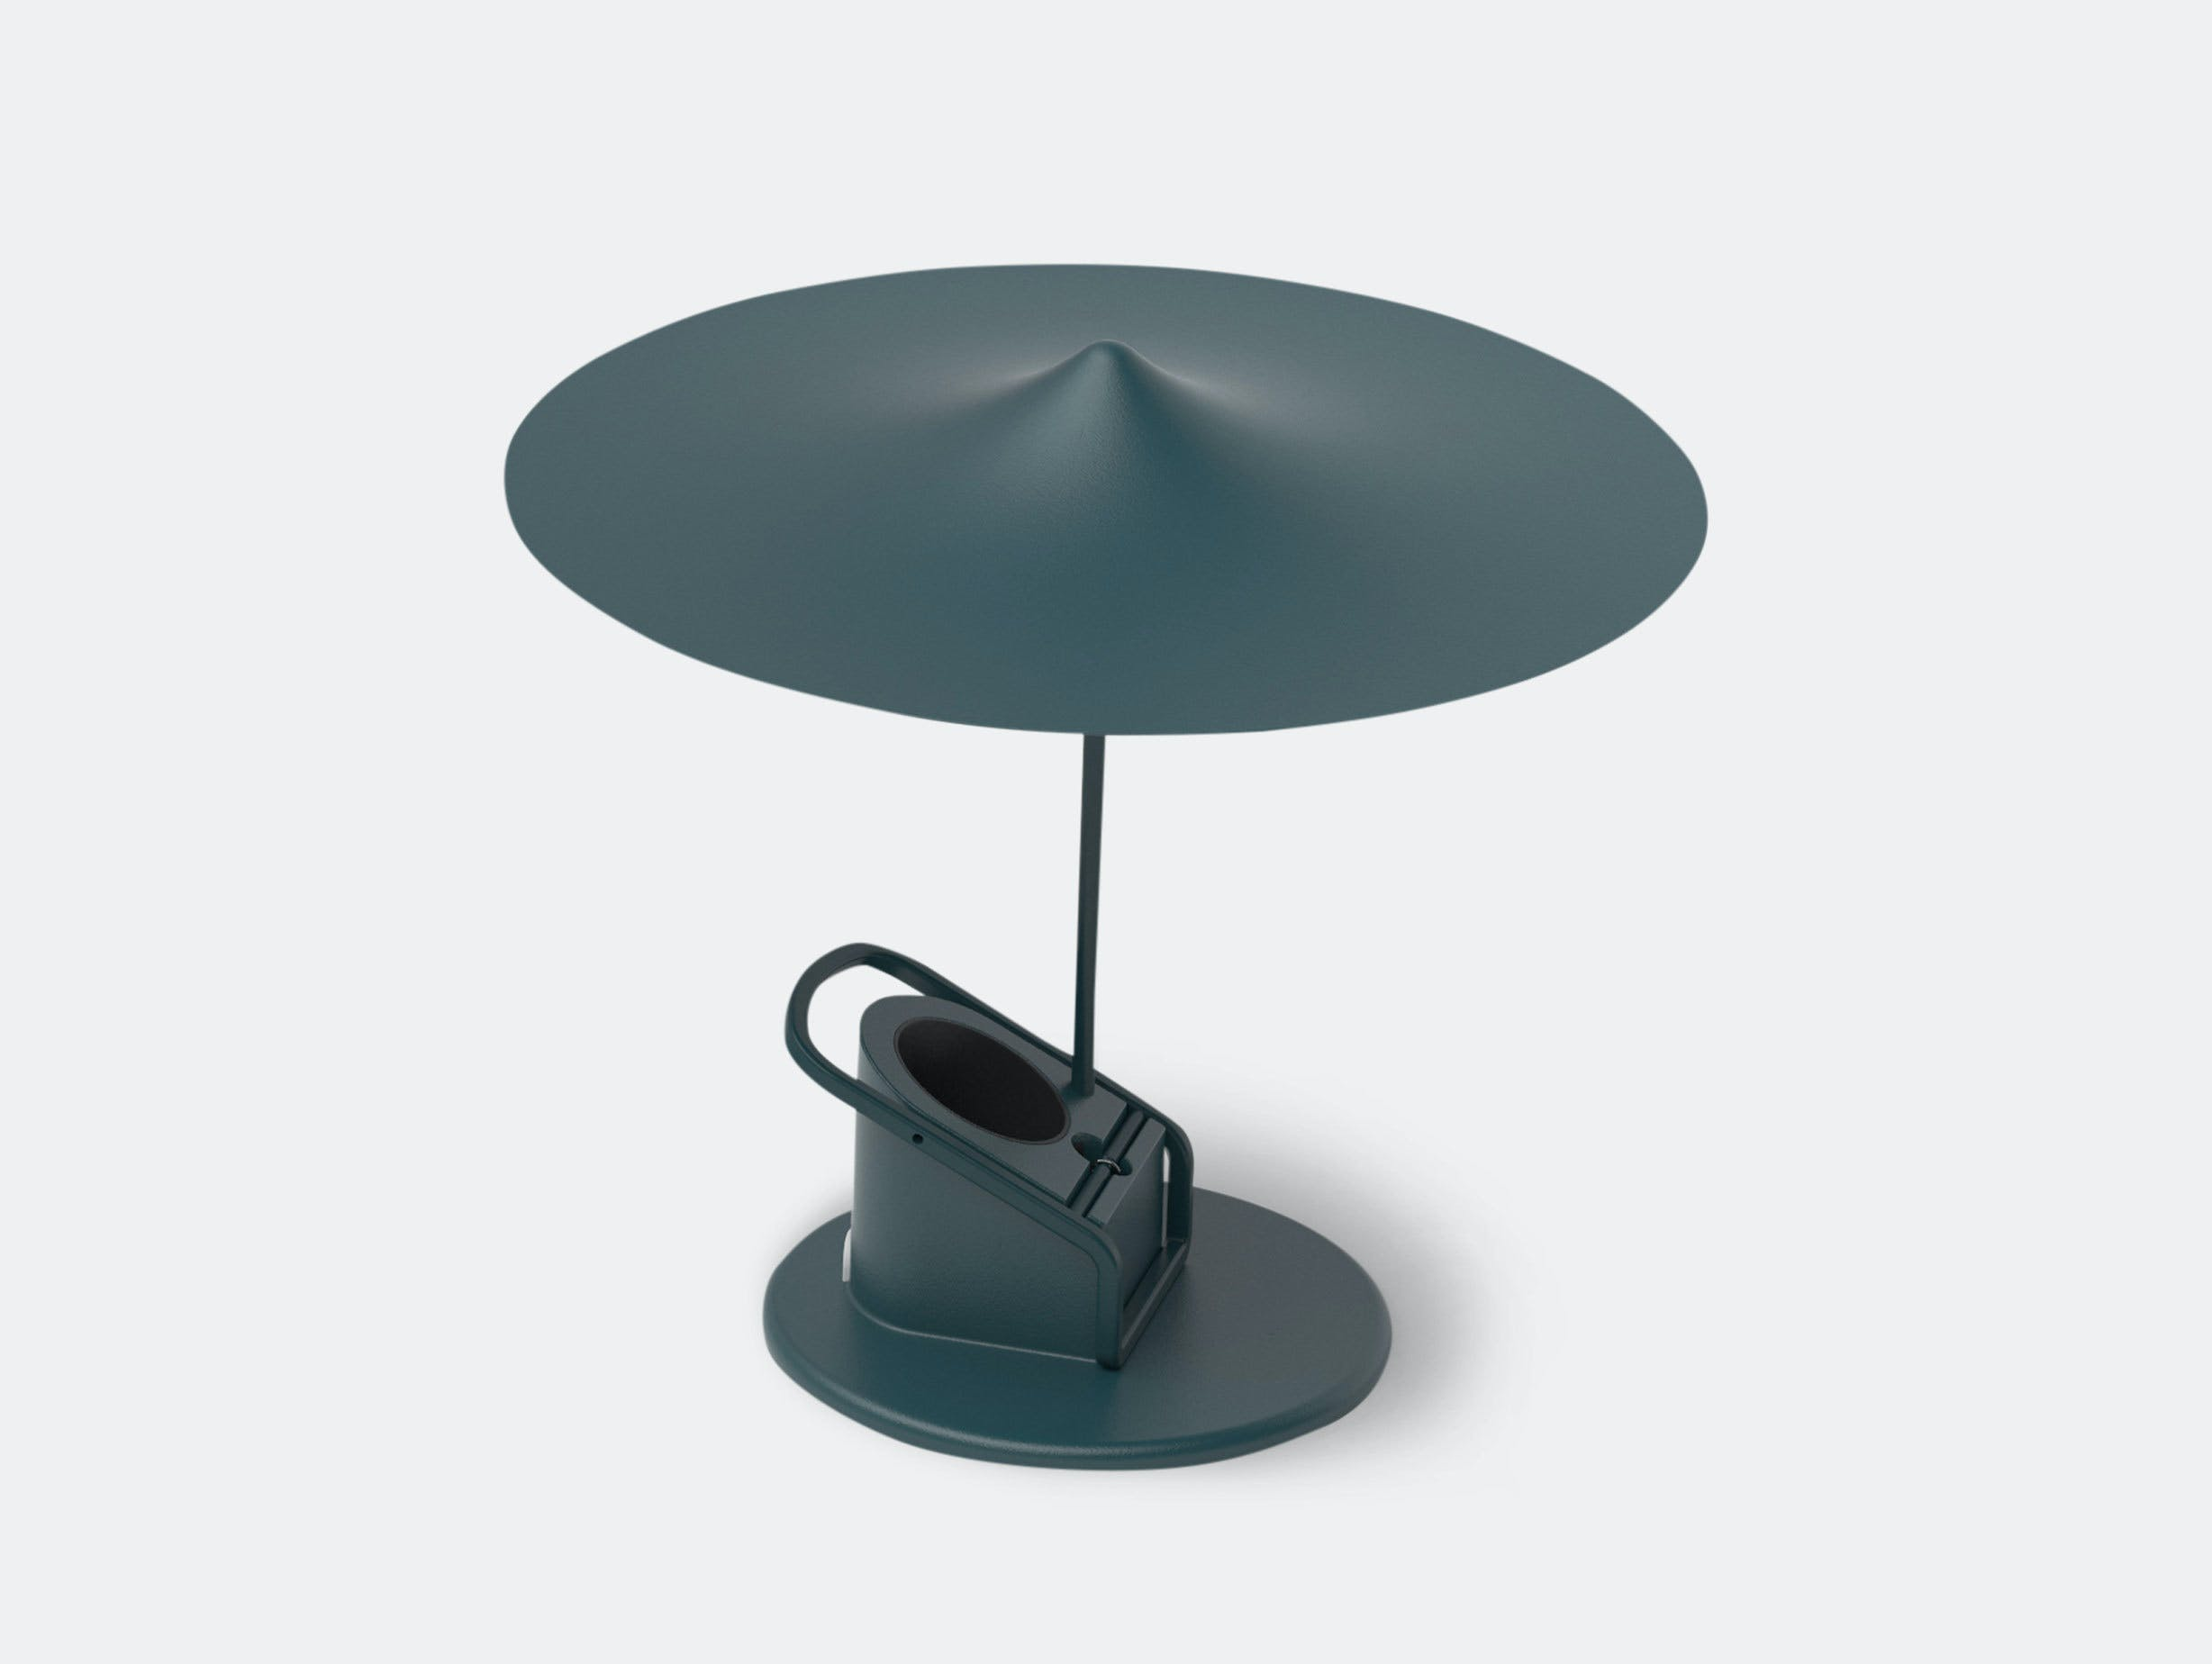 W153 Île Table & Wall Lamp image